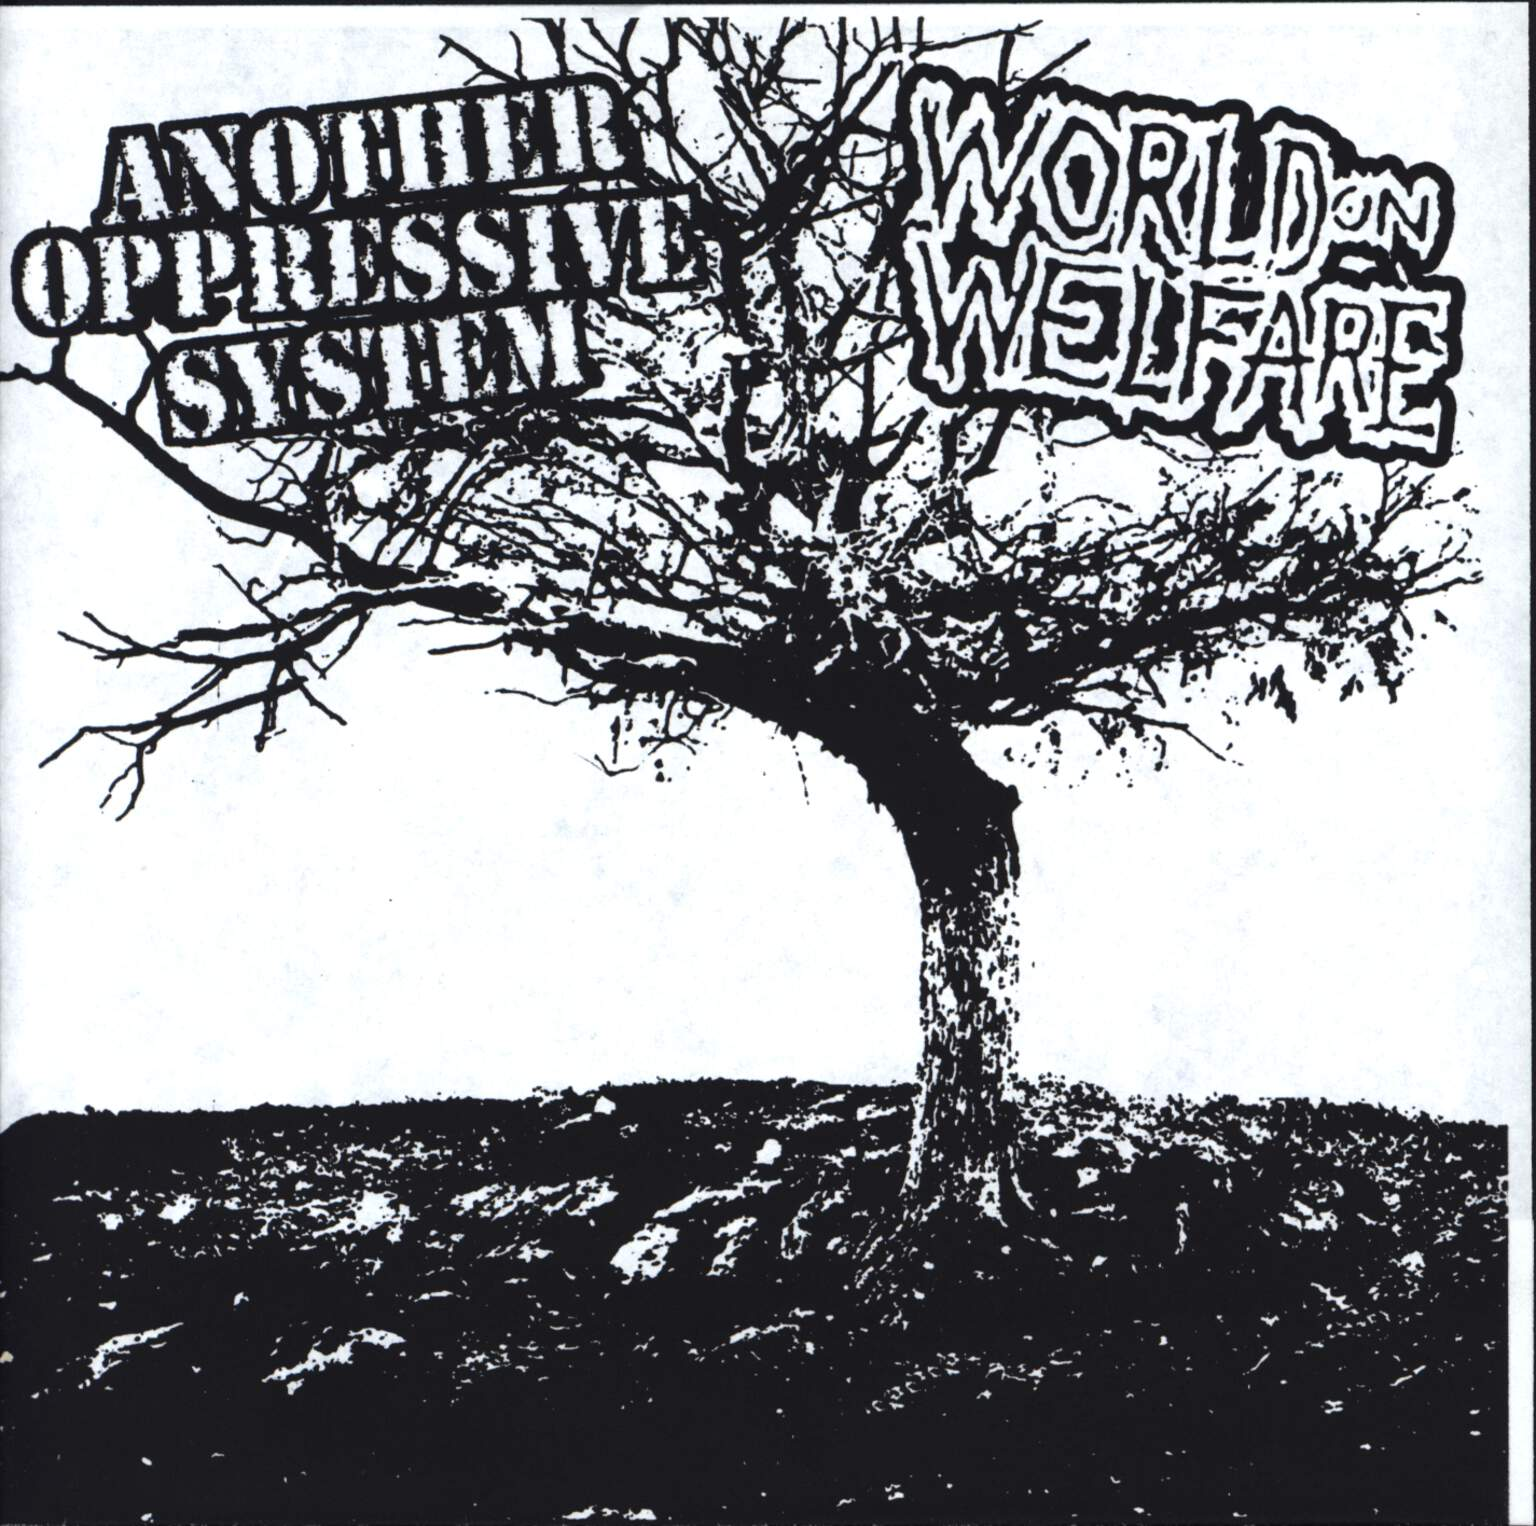 "Another Oppressive System: Another Oppressive System / World On Welfare, 7"" Single (Vinyl)"